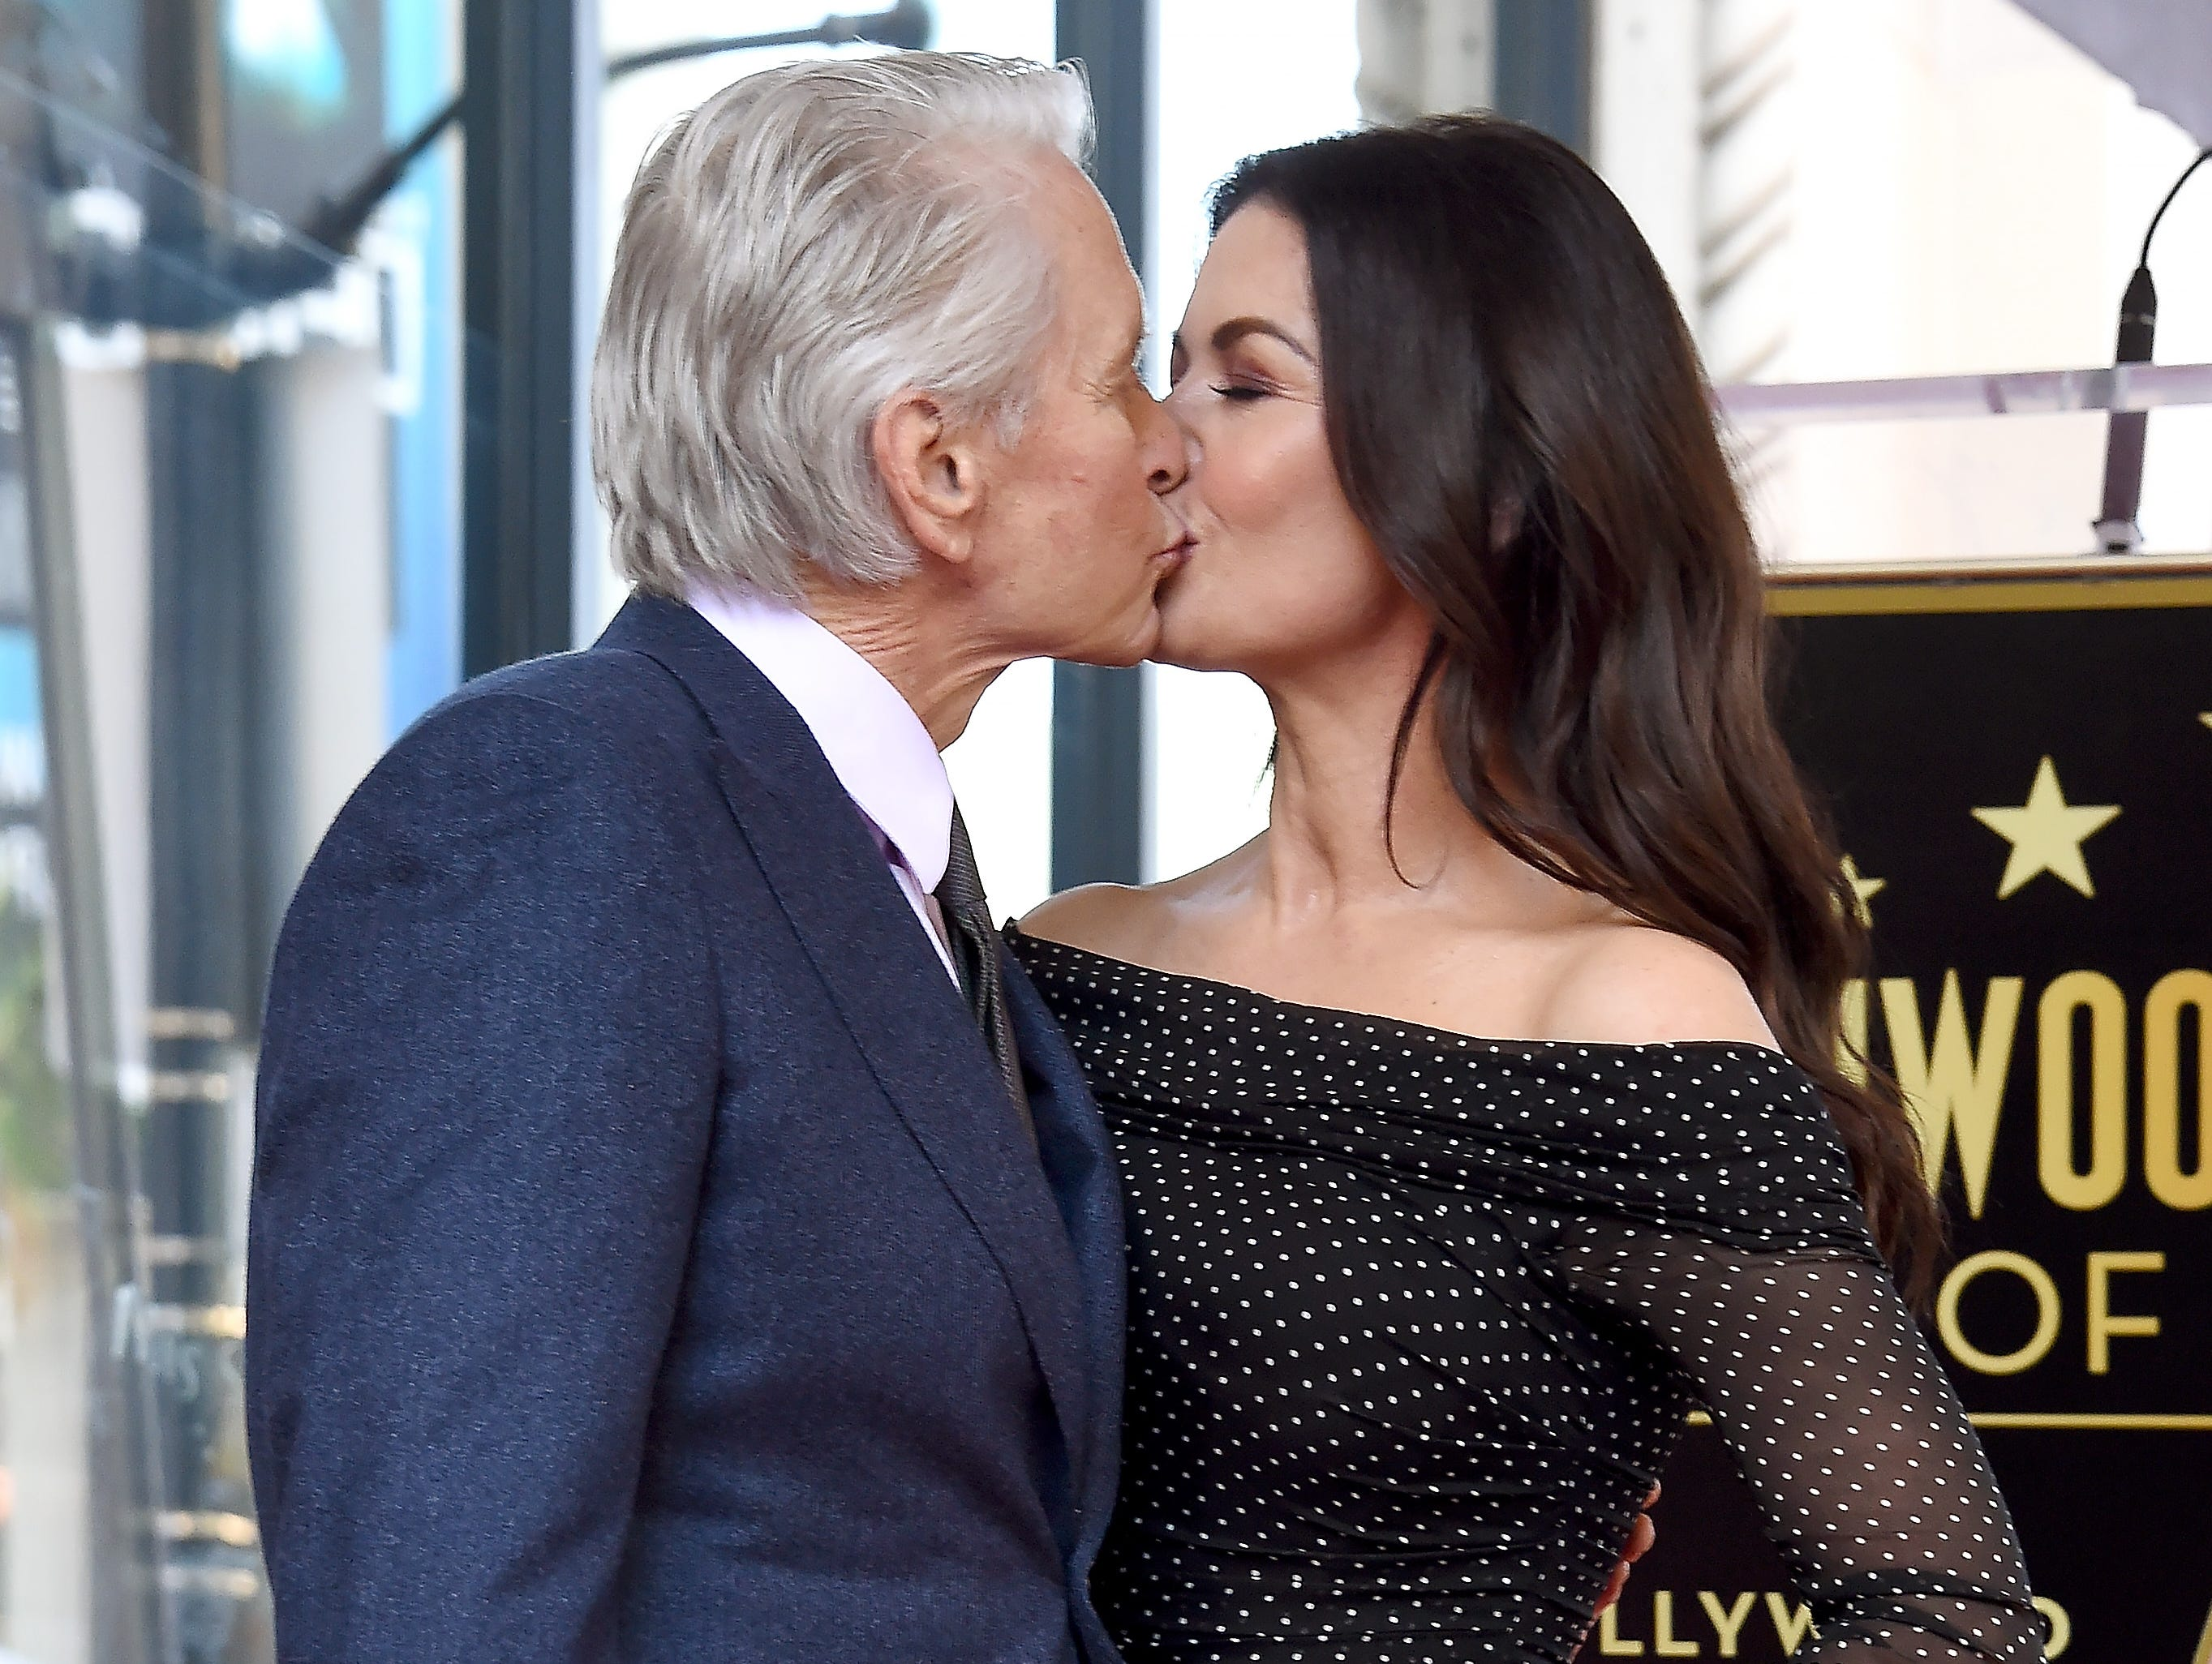 HOLLYWOOD, CA - NOVEMBER 06:  Michael Douglas and Catherine Zeta-Jones pose at the Michael Douglas Star On The Hollywood Walk Of Fame ceremony on November 6, 2018 in Hollywood, California.  (Photo by Gregg DeGuire/Getty Images) ORG XMIT: 775248764 ORIG FILE ID: 1058324098